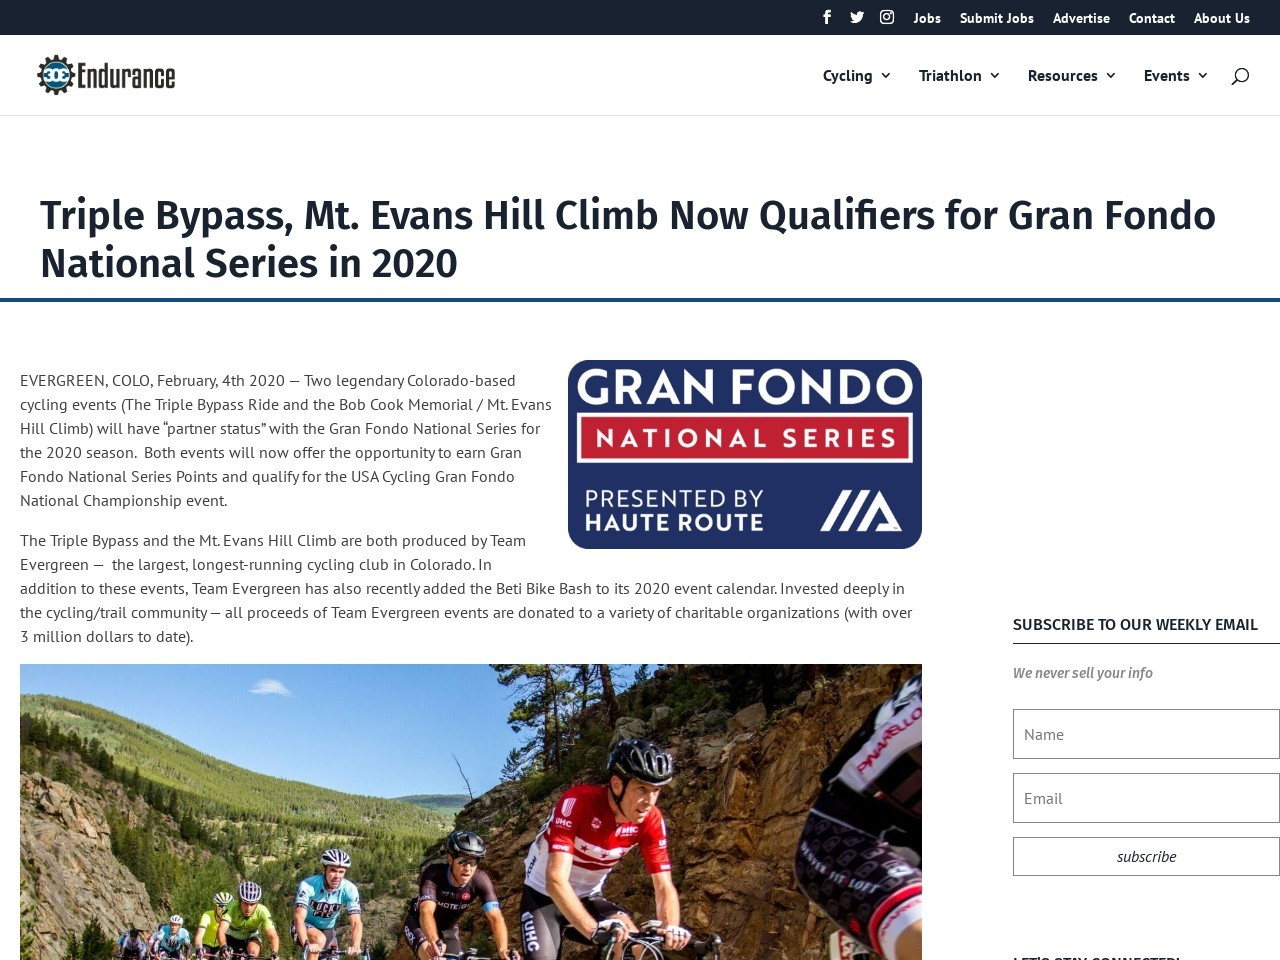 Triple Bypass, Mt. Evans Hill Climb Now Qualifiers for Gran Fondo National Series in 2020